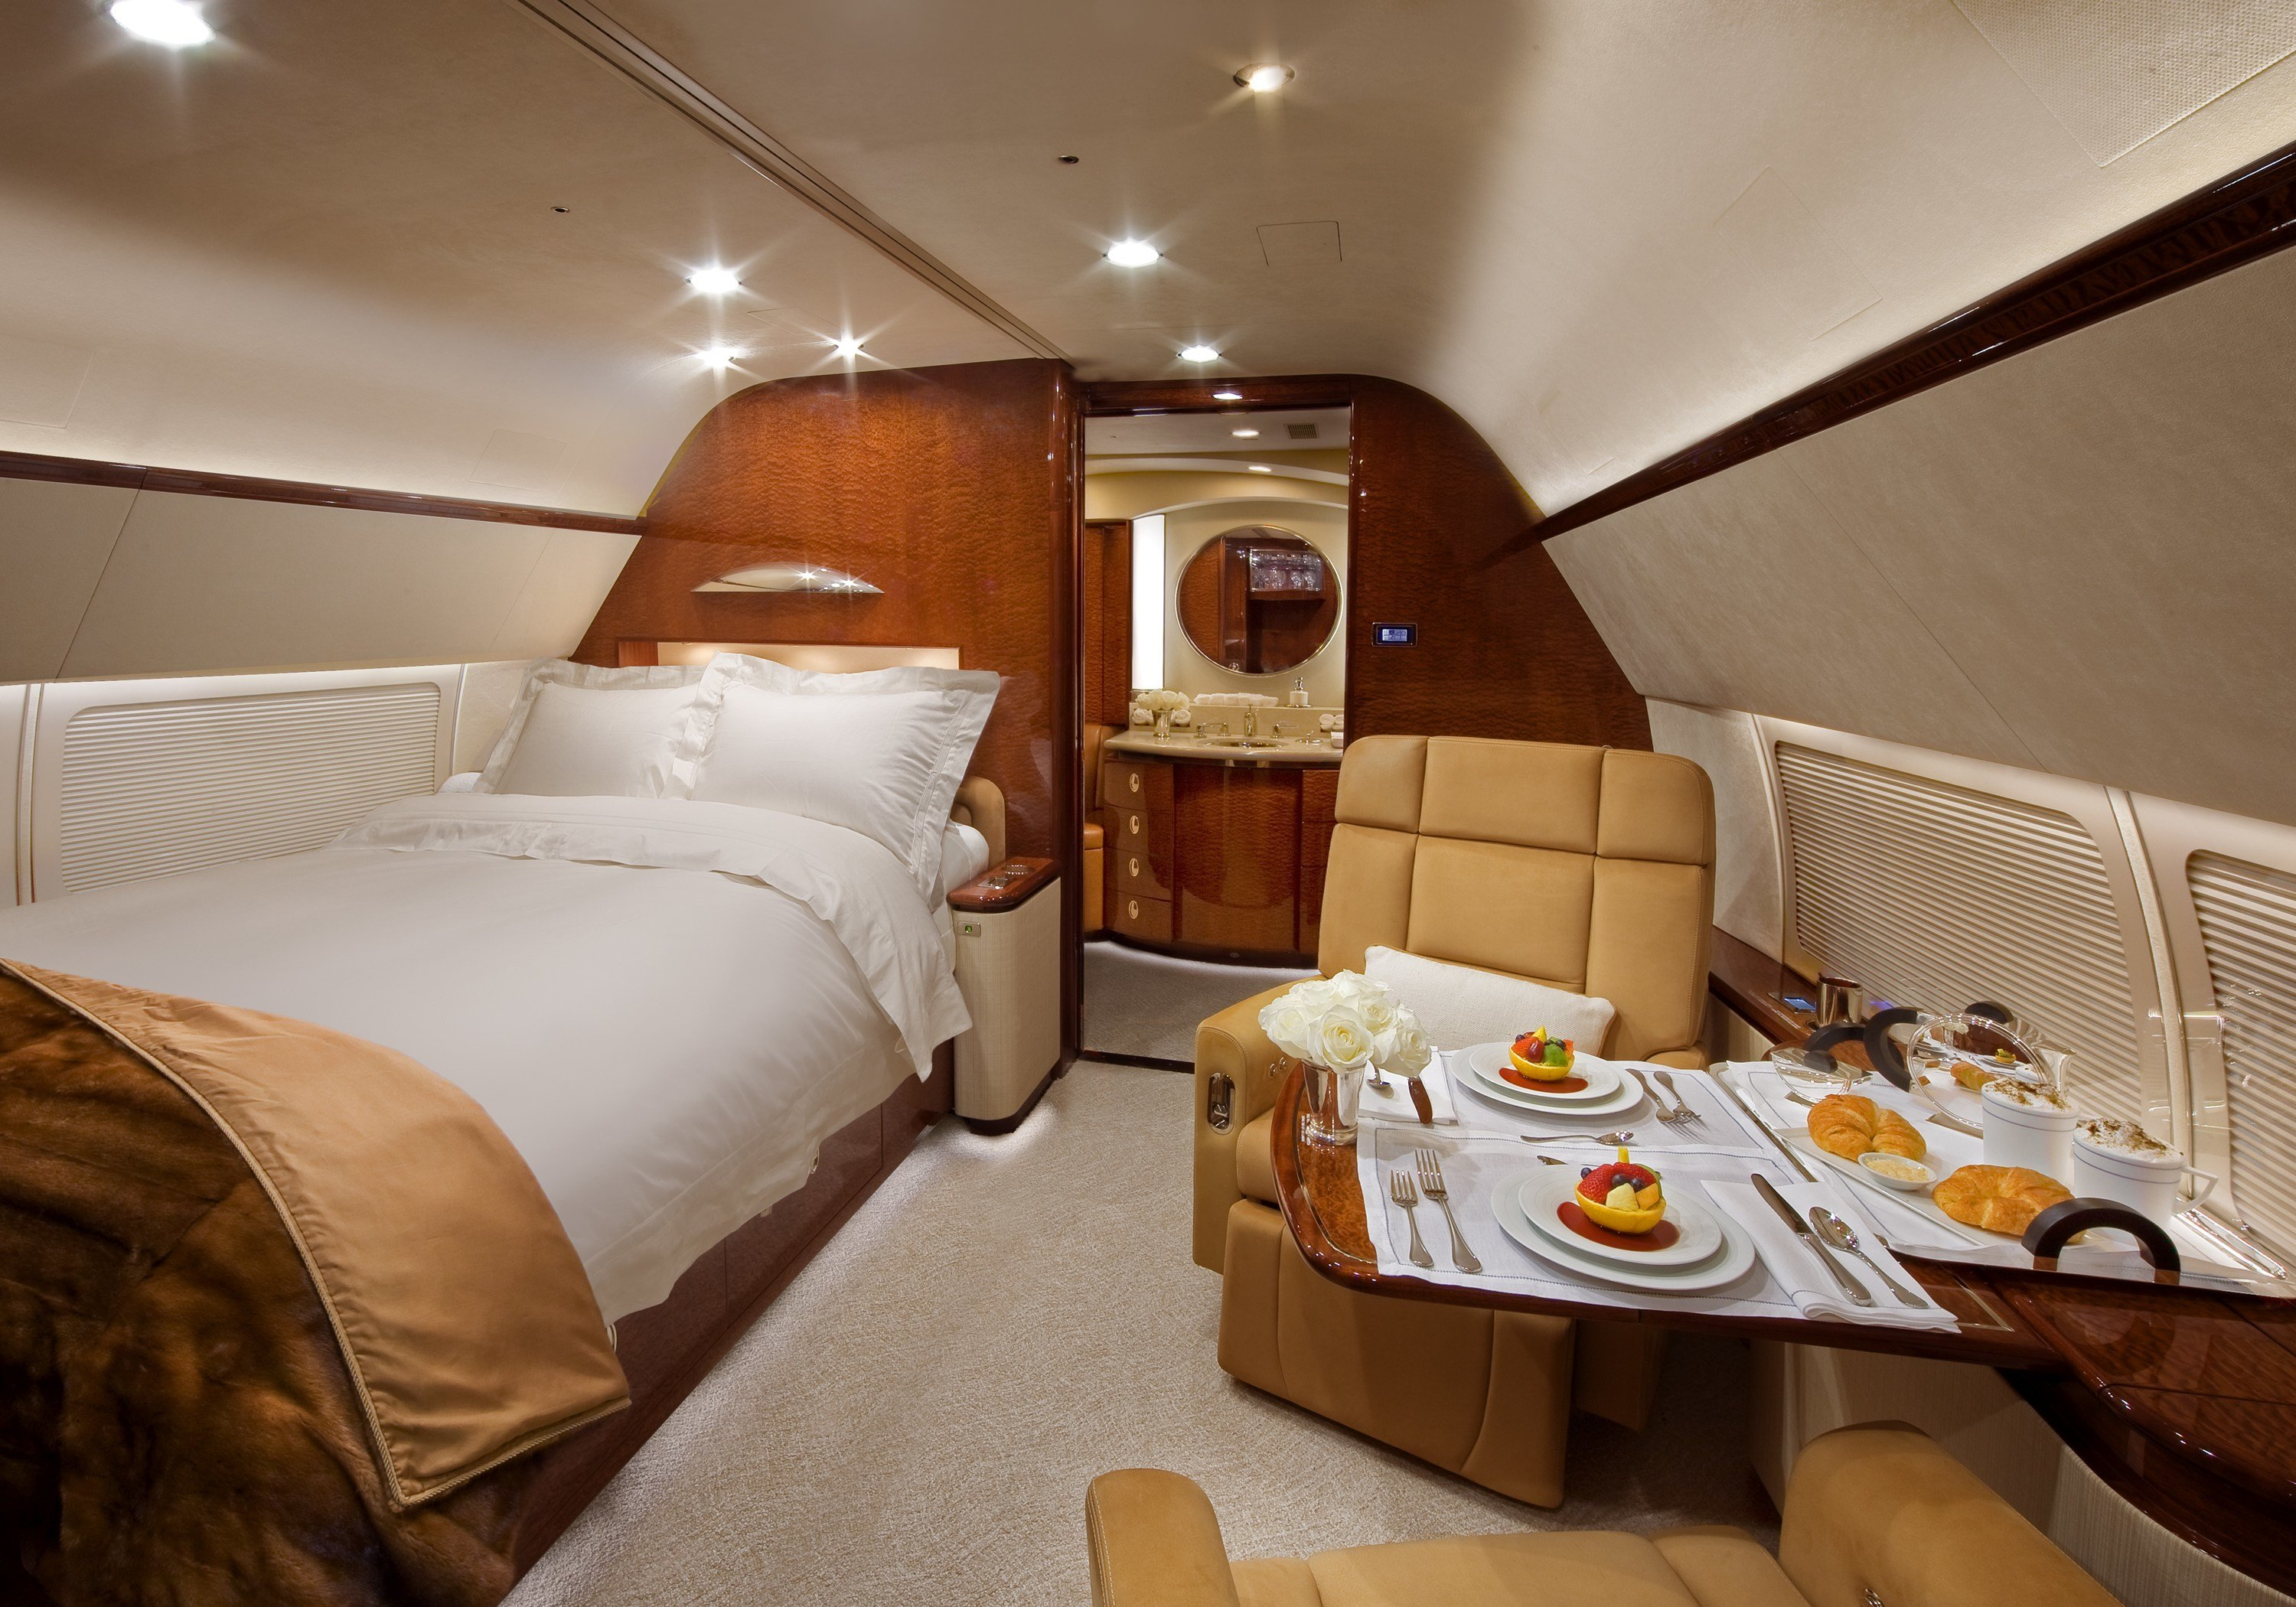 Best Luxury Bedroom For One Inside A Private Jet Cozyplaces With Pictures